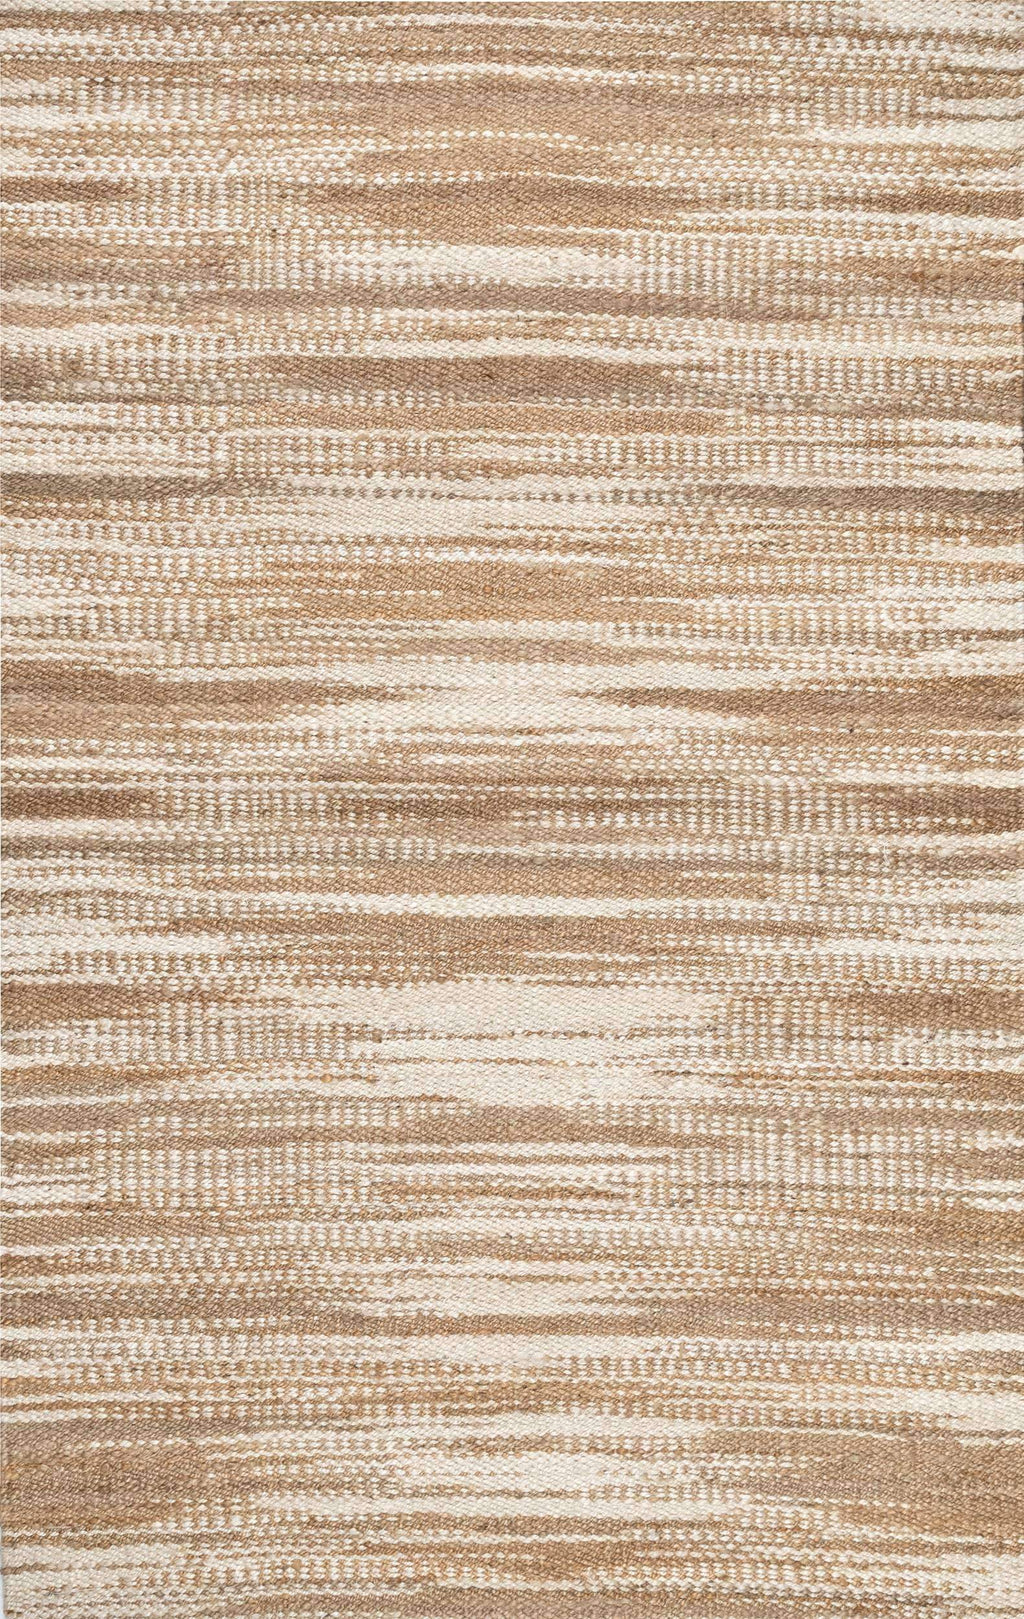 Hand Loomed Trinity Striped Jute Rug